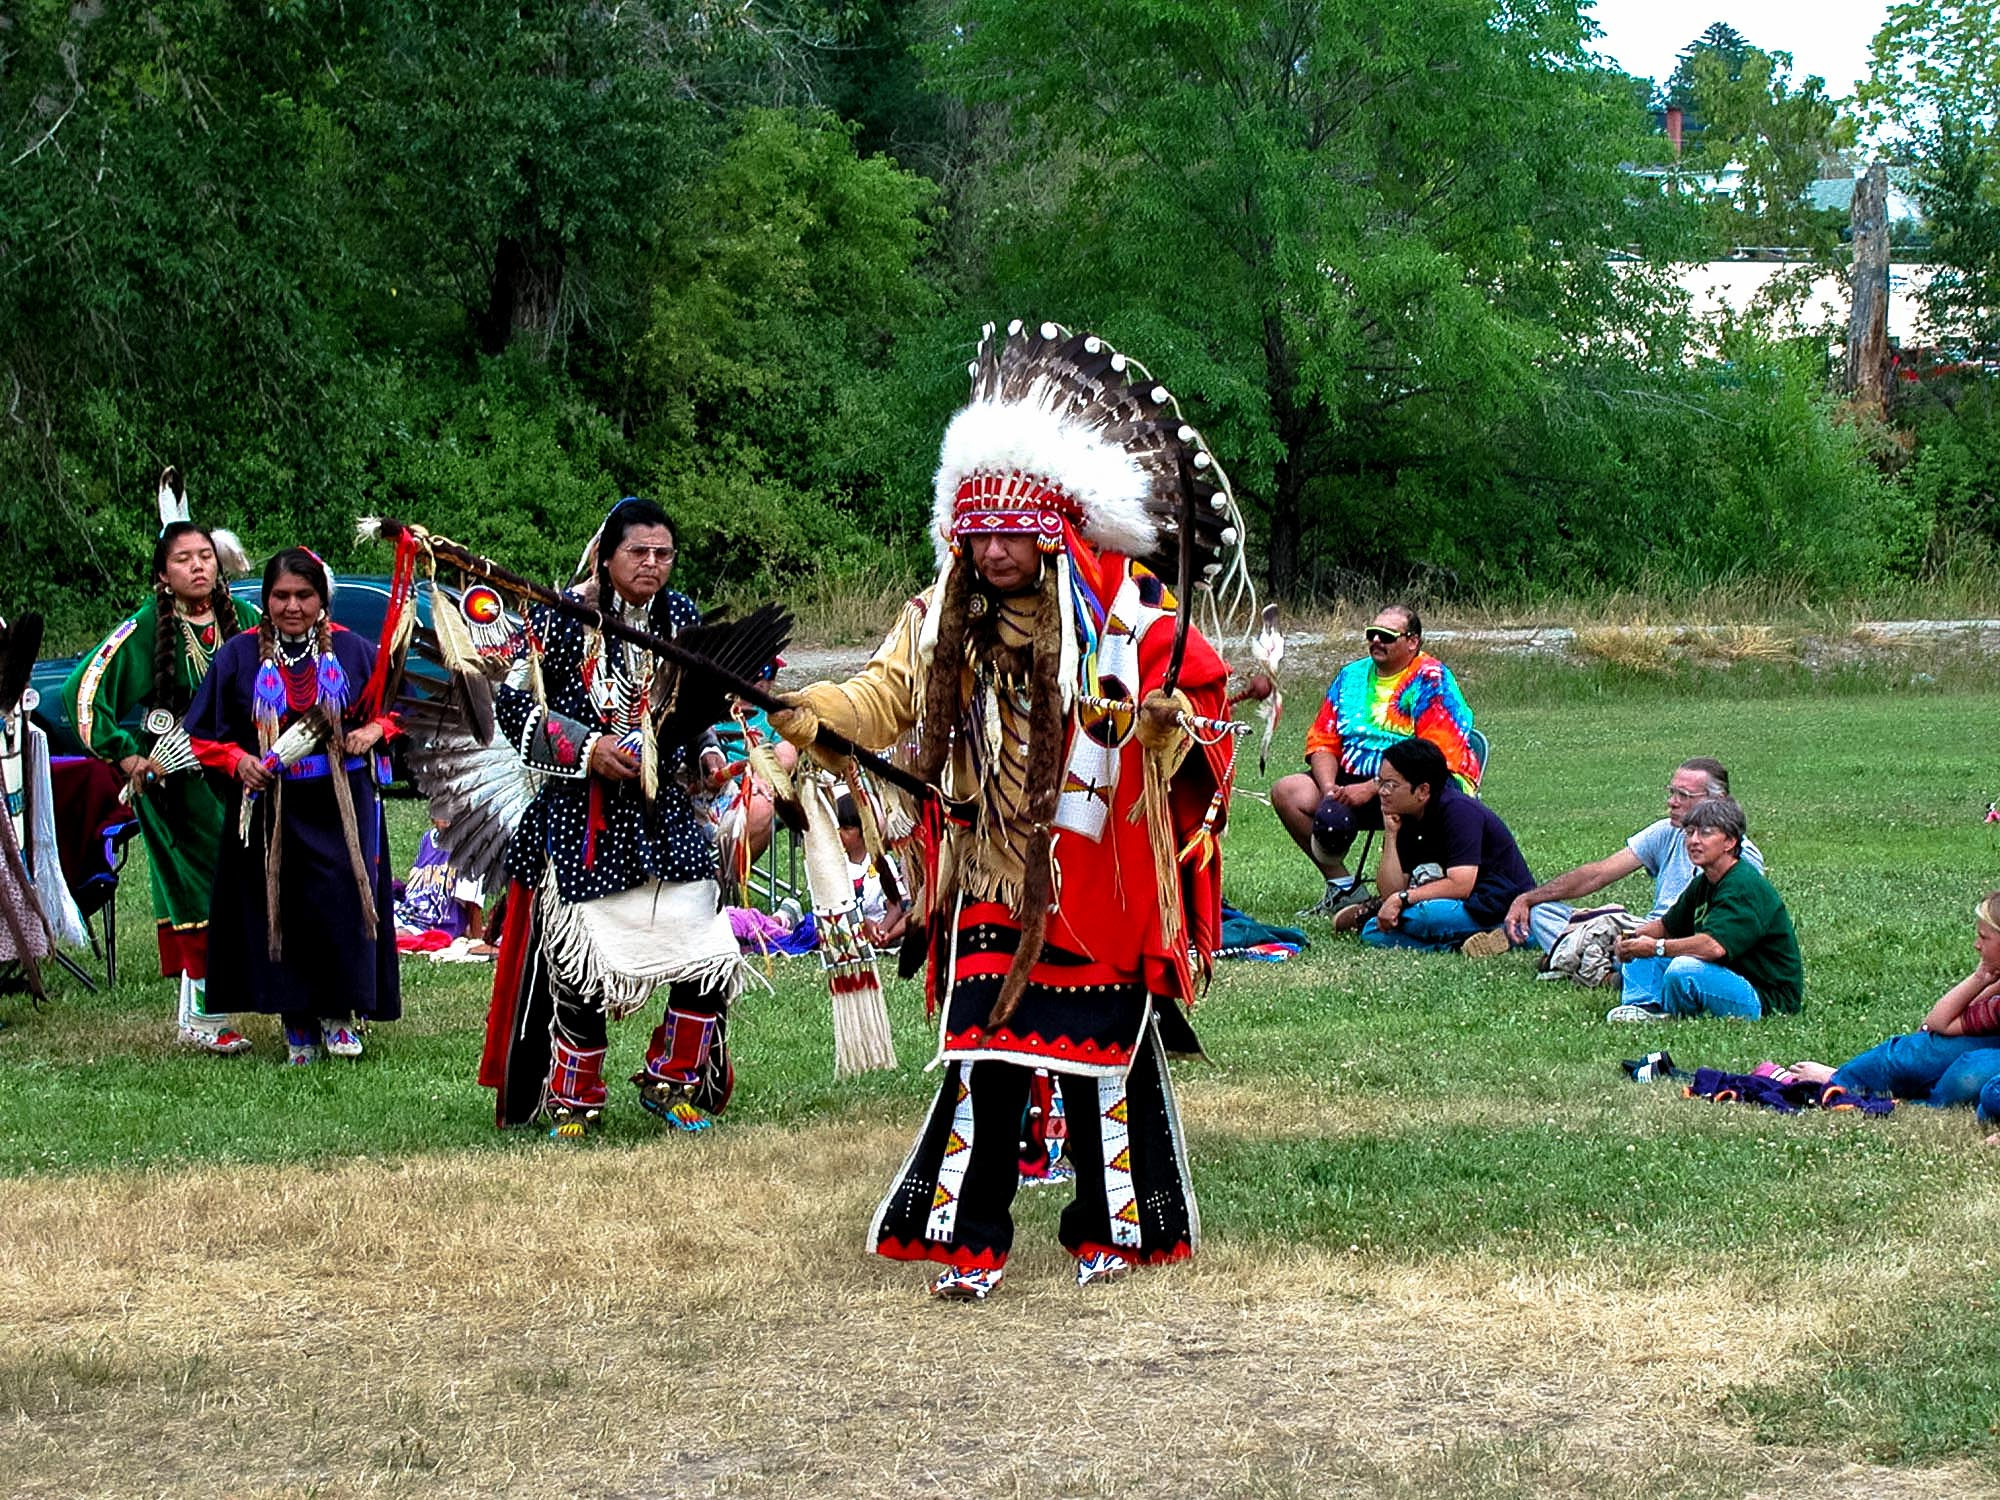 Dancer, Sacajawea Heritage Days